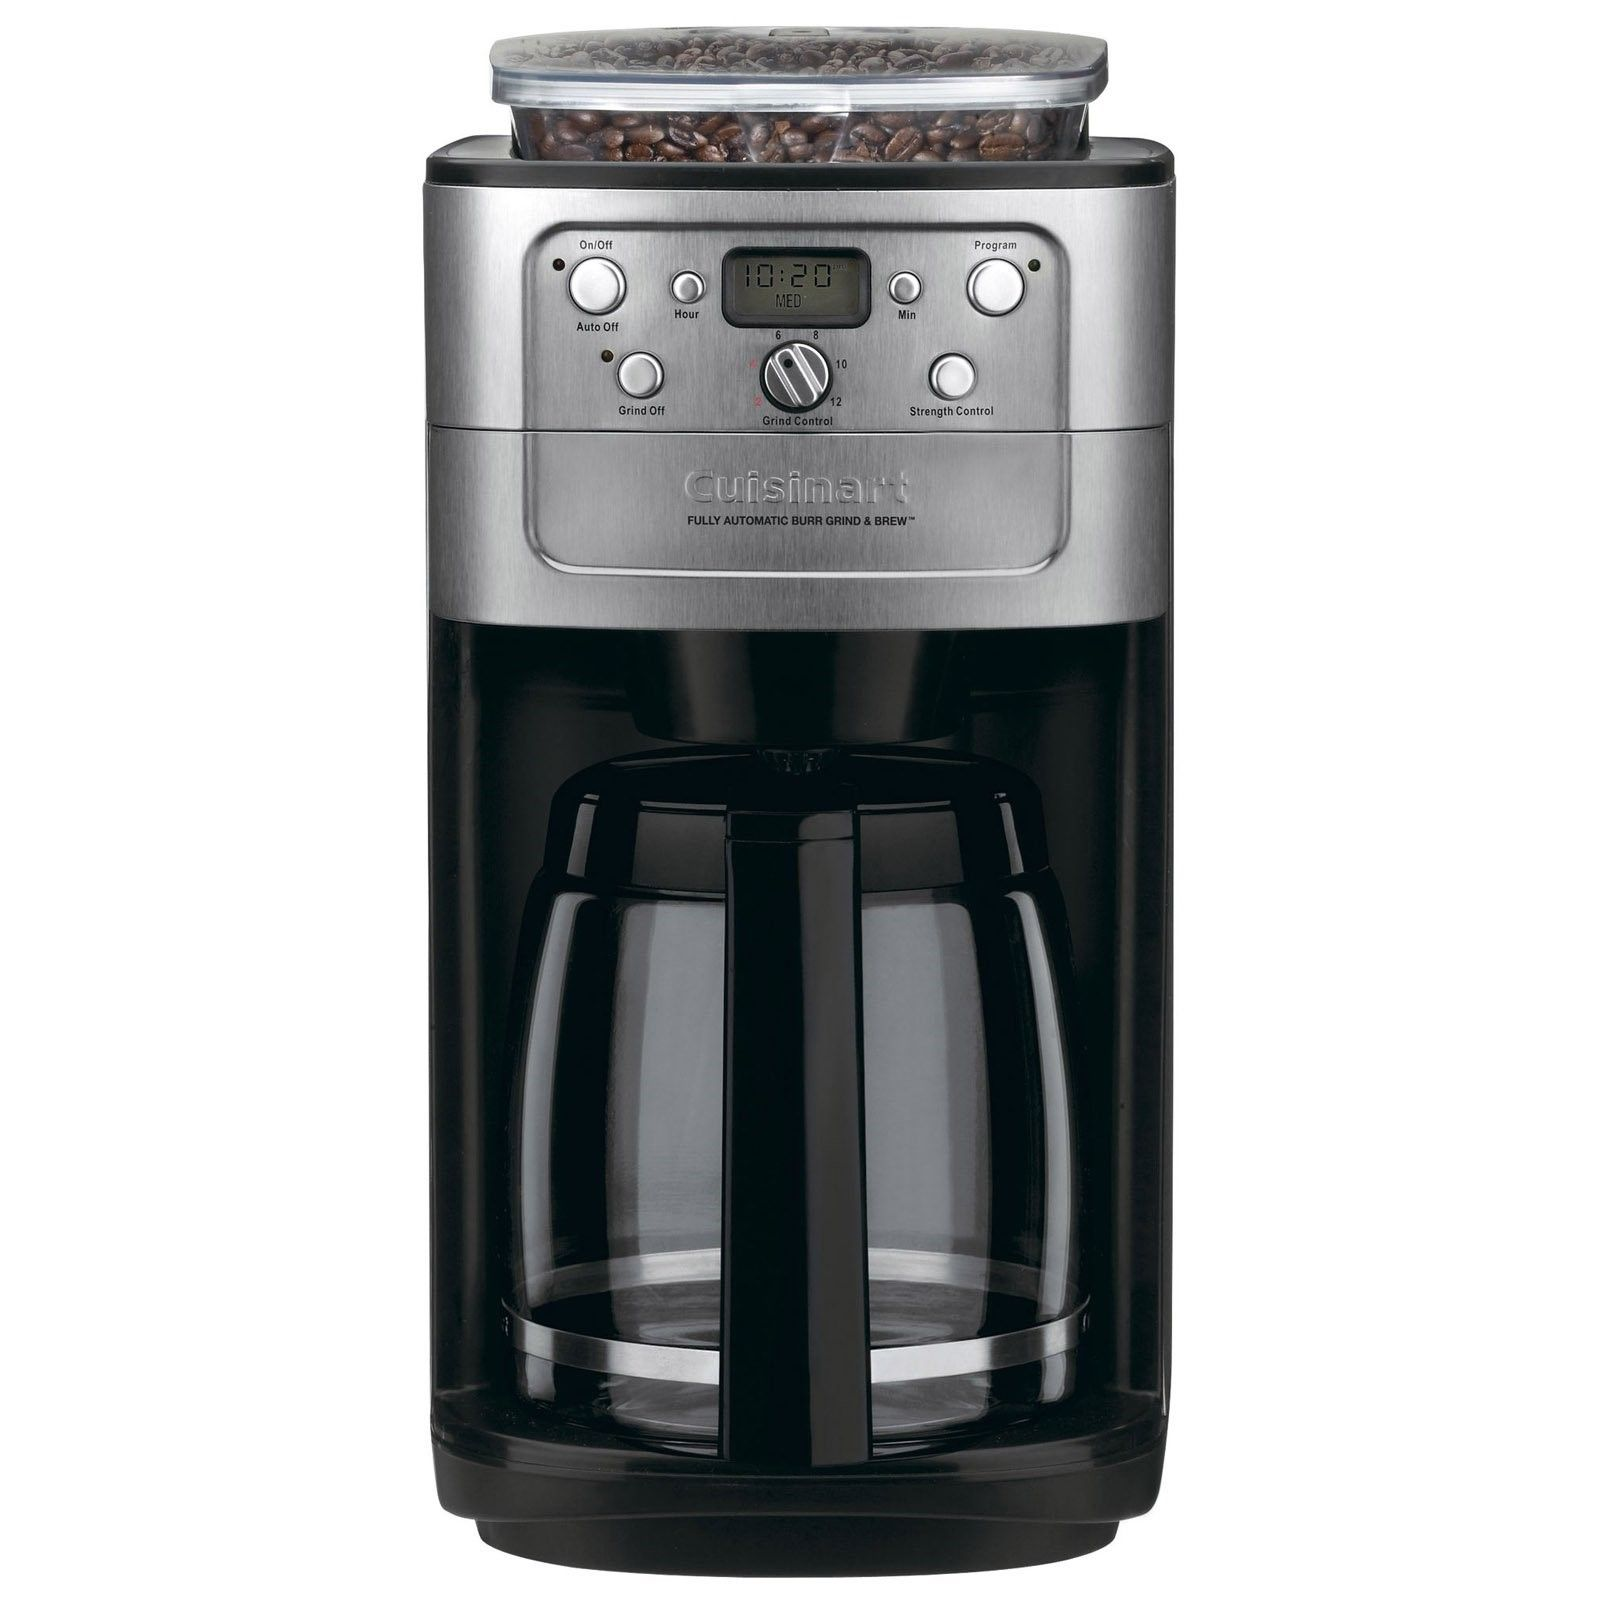 Home Thermal coffee maker, Best coffee maker, Best drip